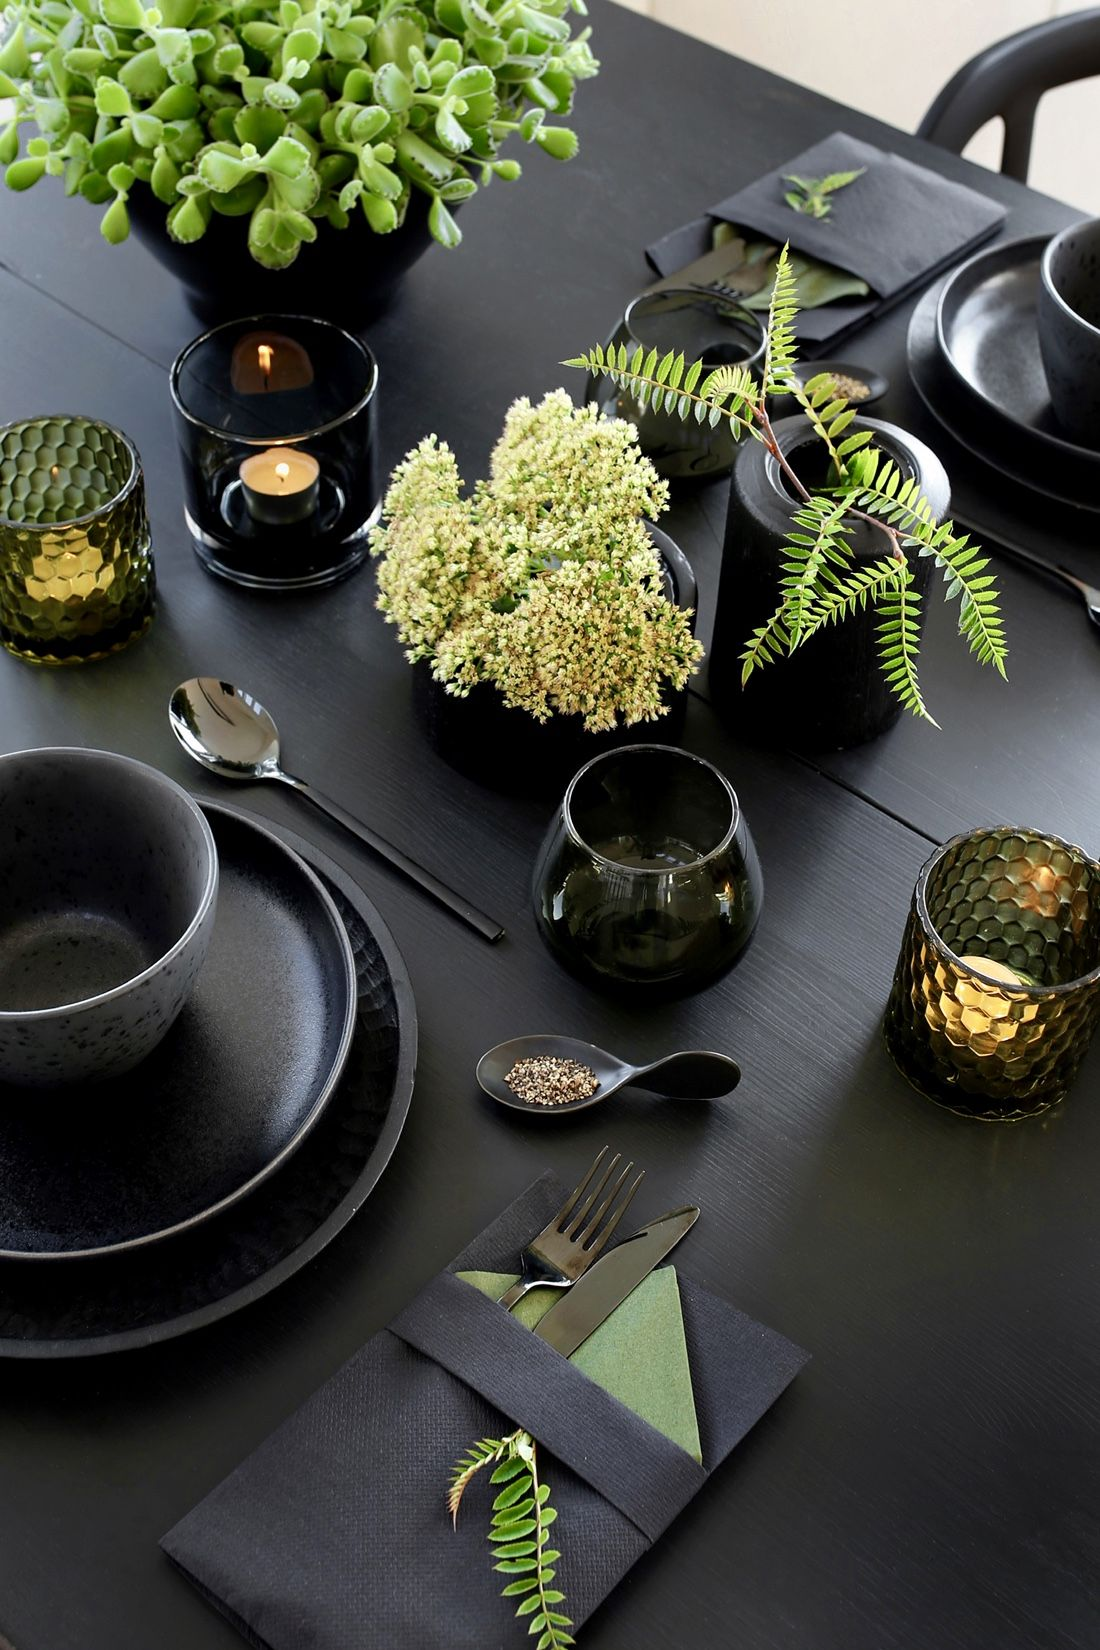 ... style it: black on black with organic green touches | modern table